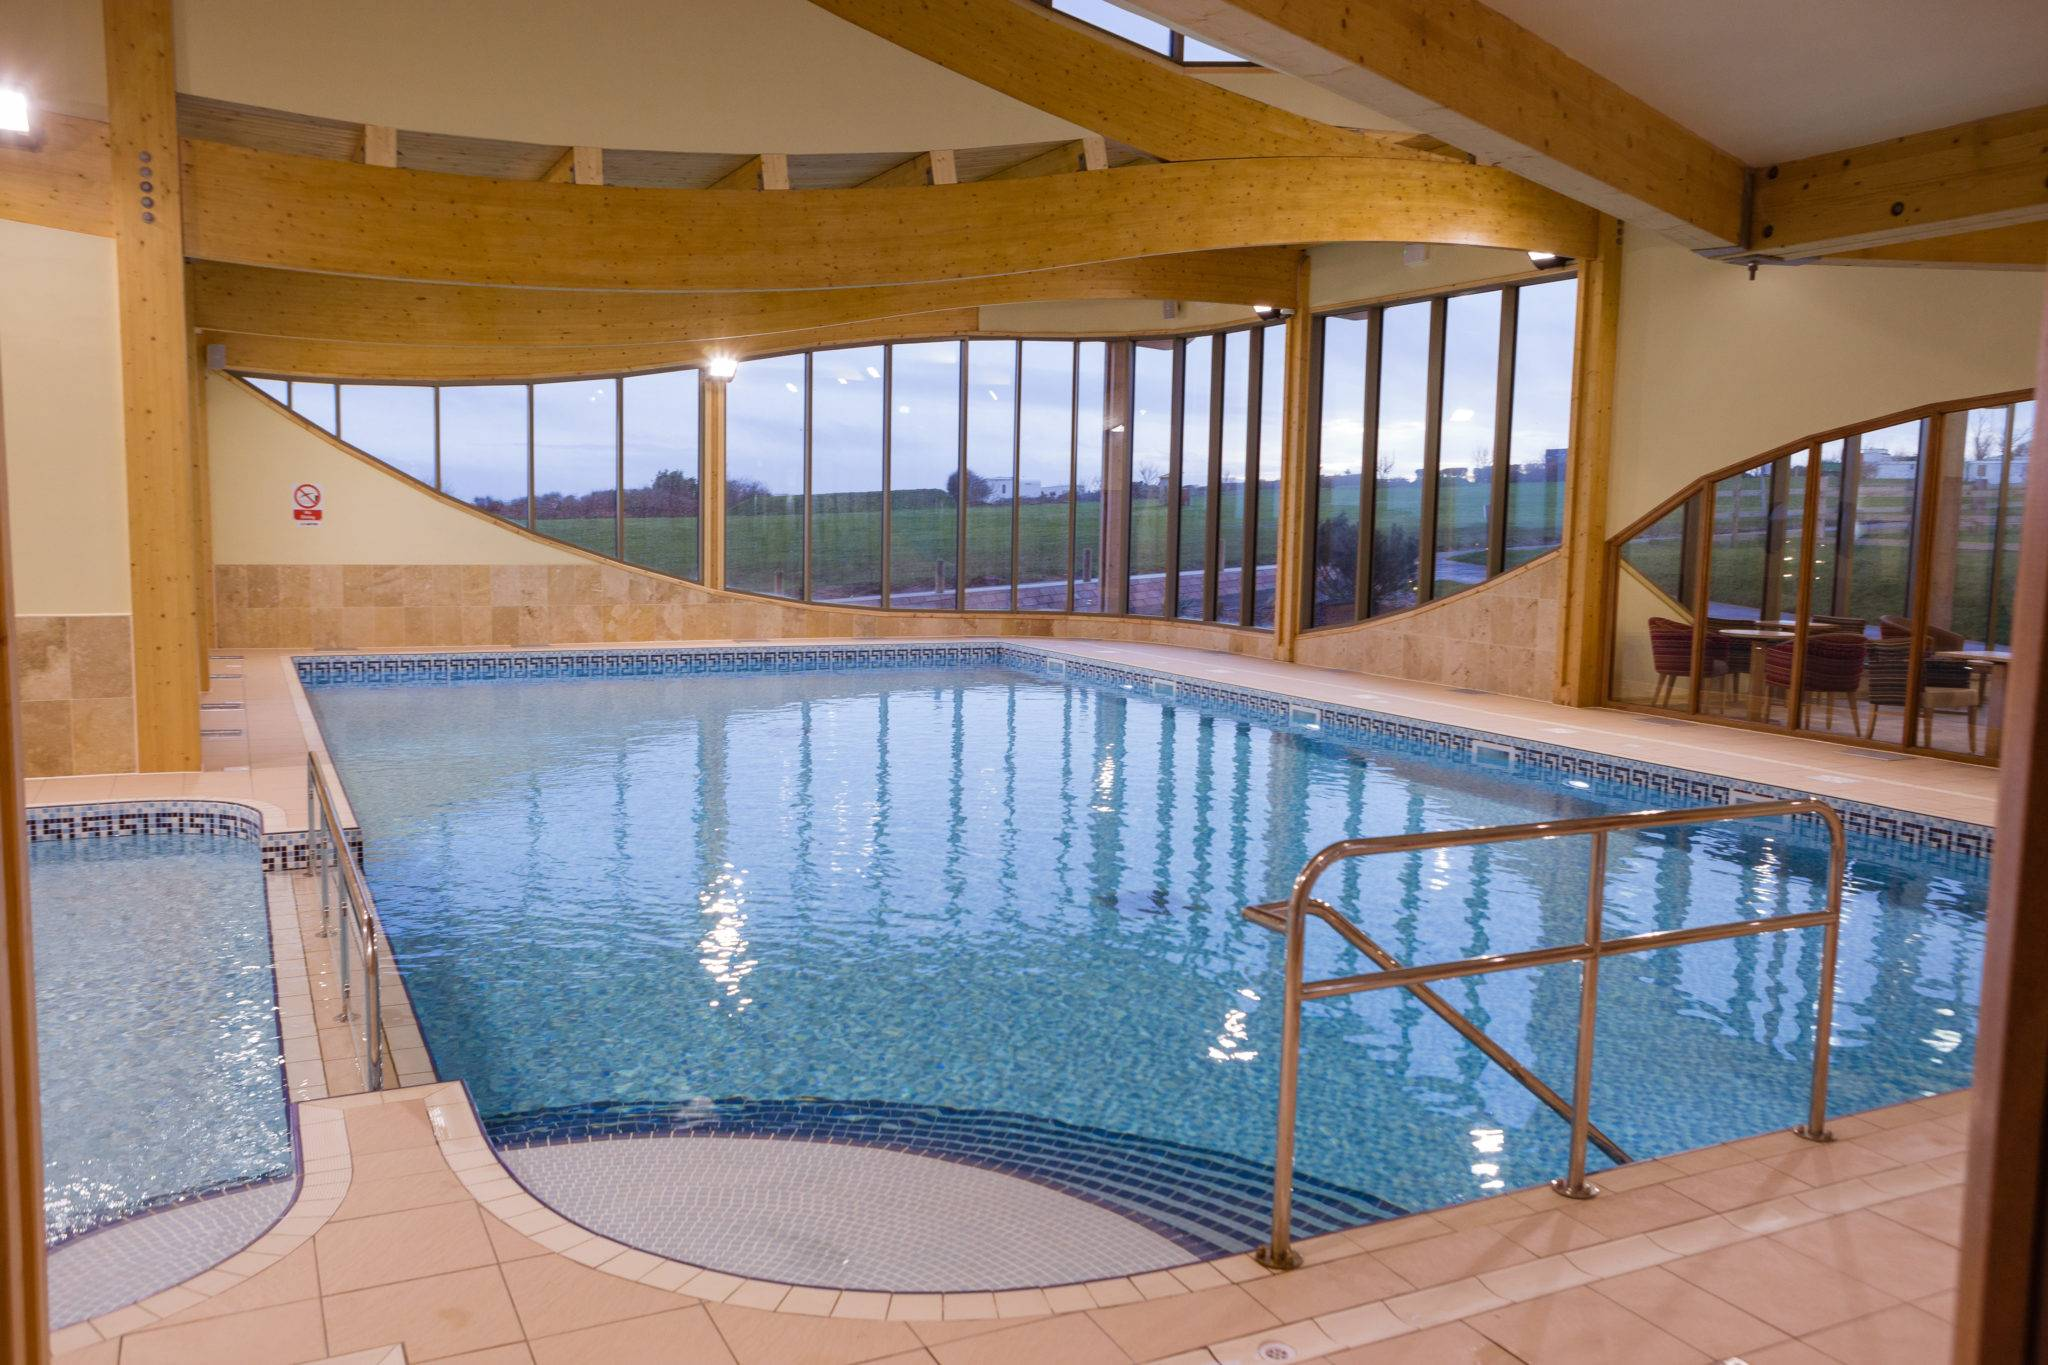 http://silverbay.co.uk/wp-content/uploads/2015/01/silver-bay-holiday-village-anglesey-two-swimming-pools.jpg